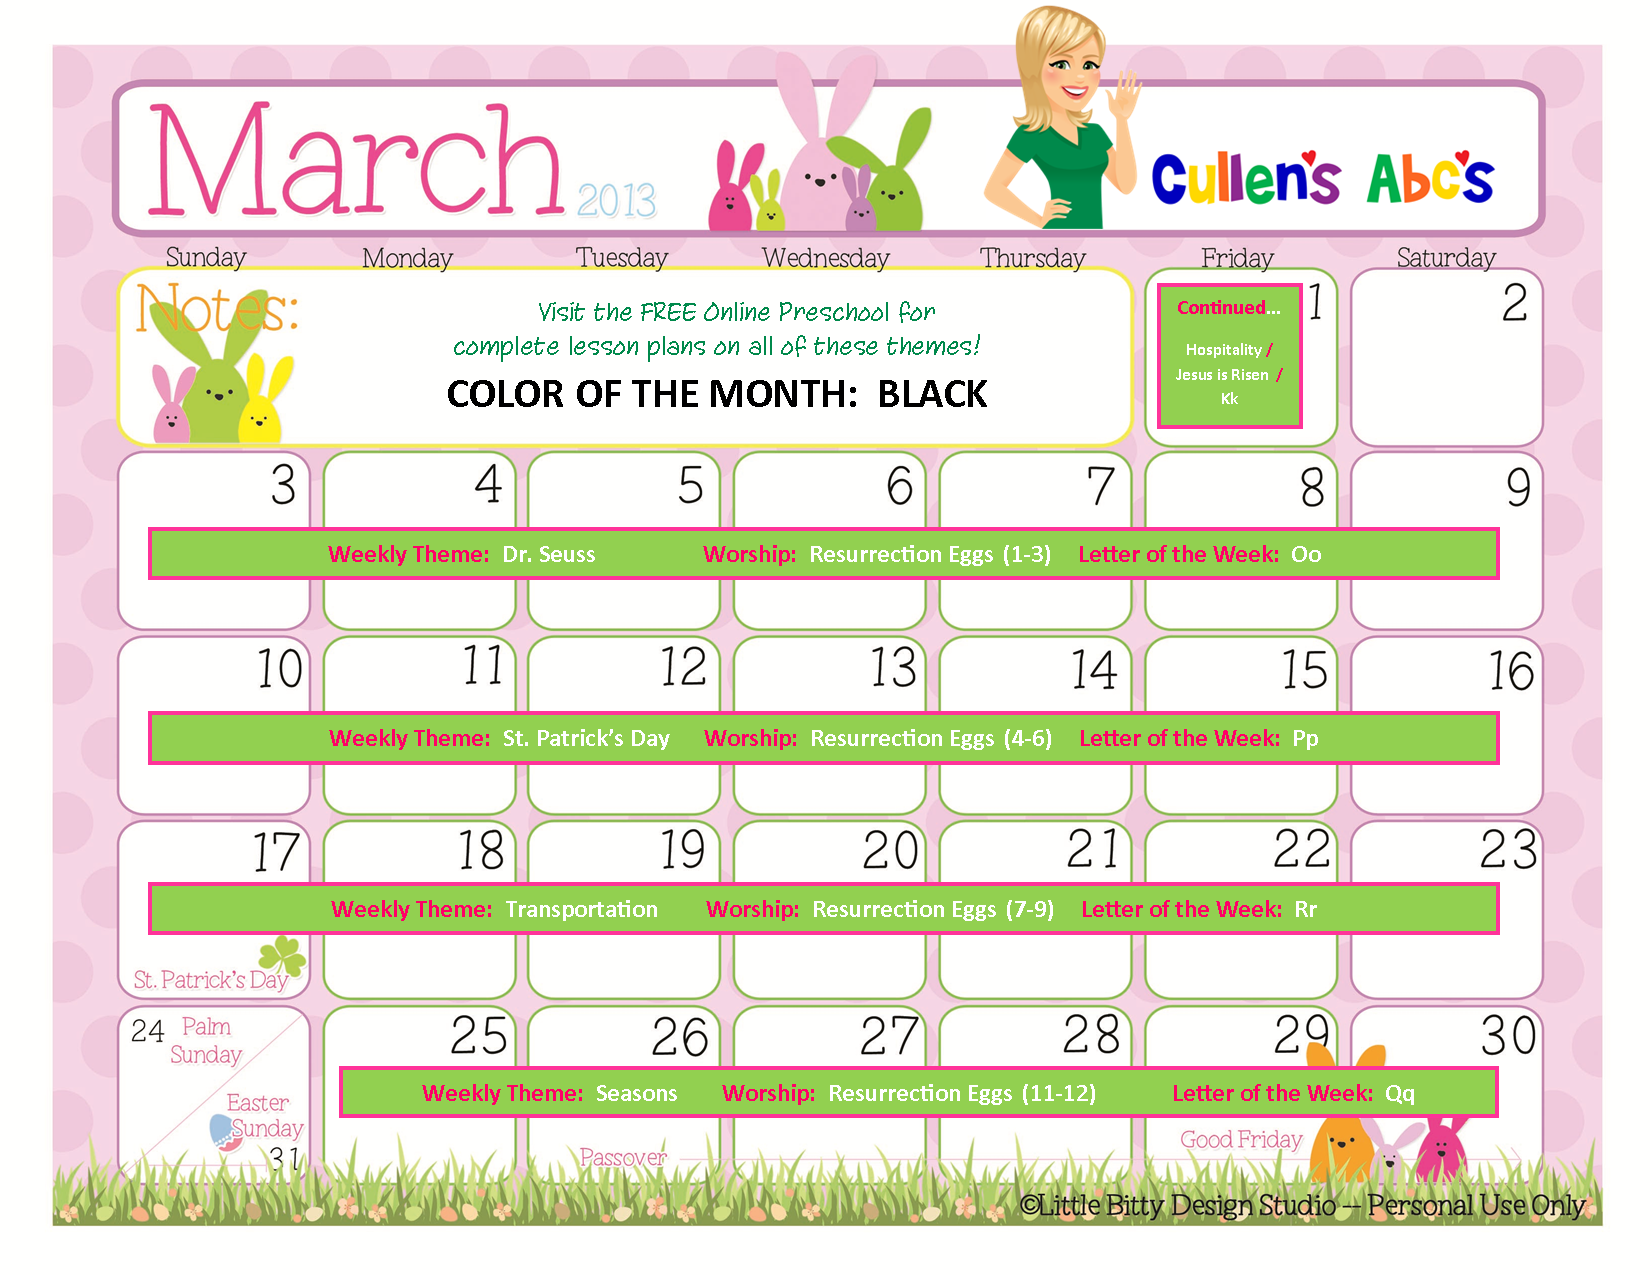 March 2013 Free Online Preschool Calendar | Christian Children ...